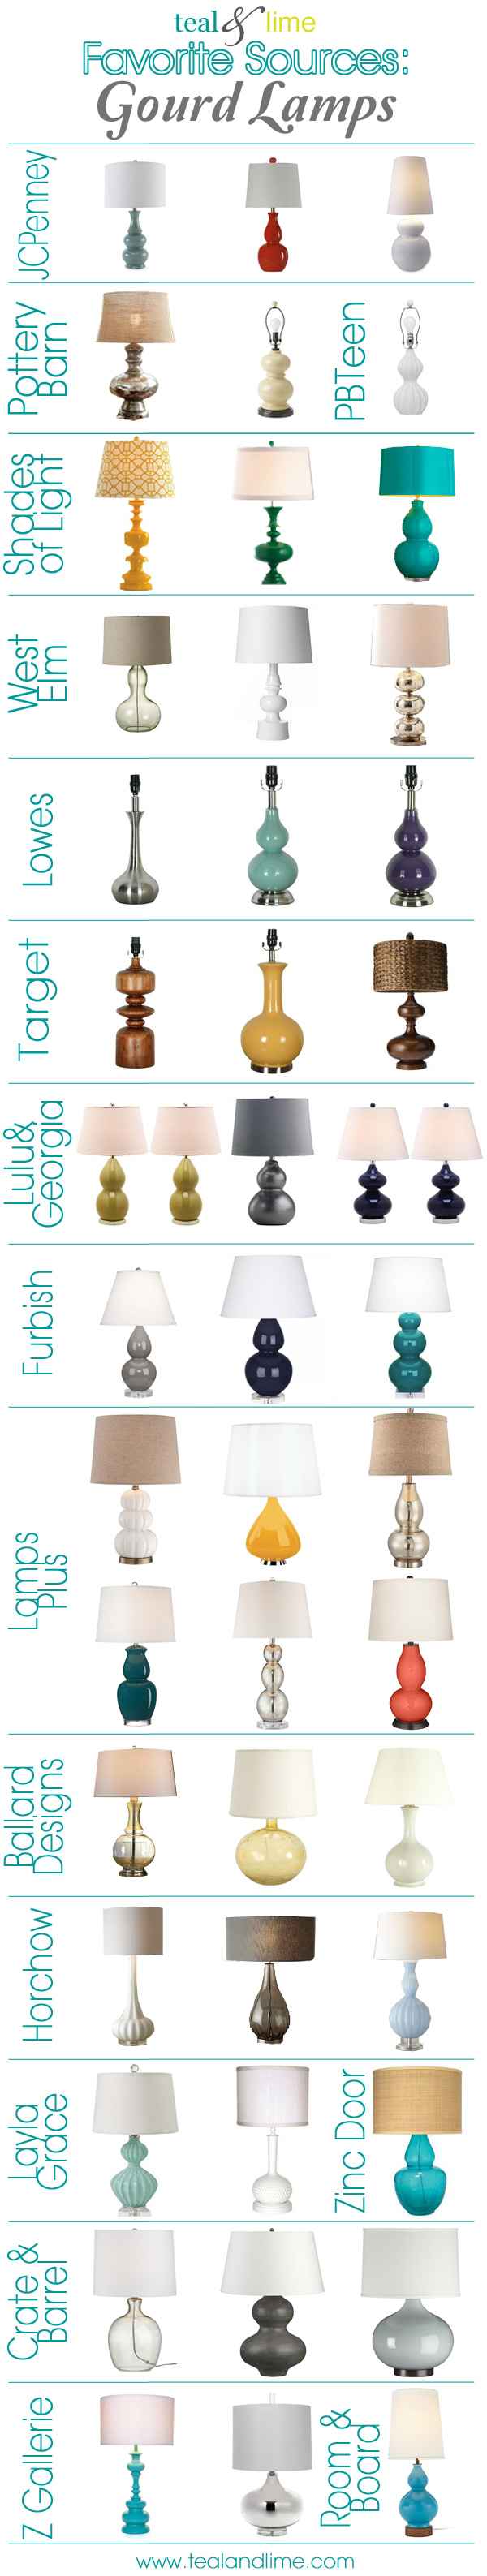 45 Gorgeous Gourd Lamps | tealandlime.com